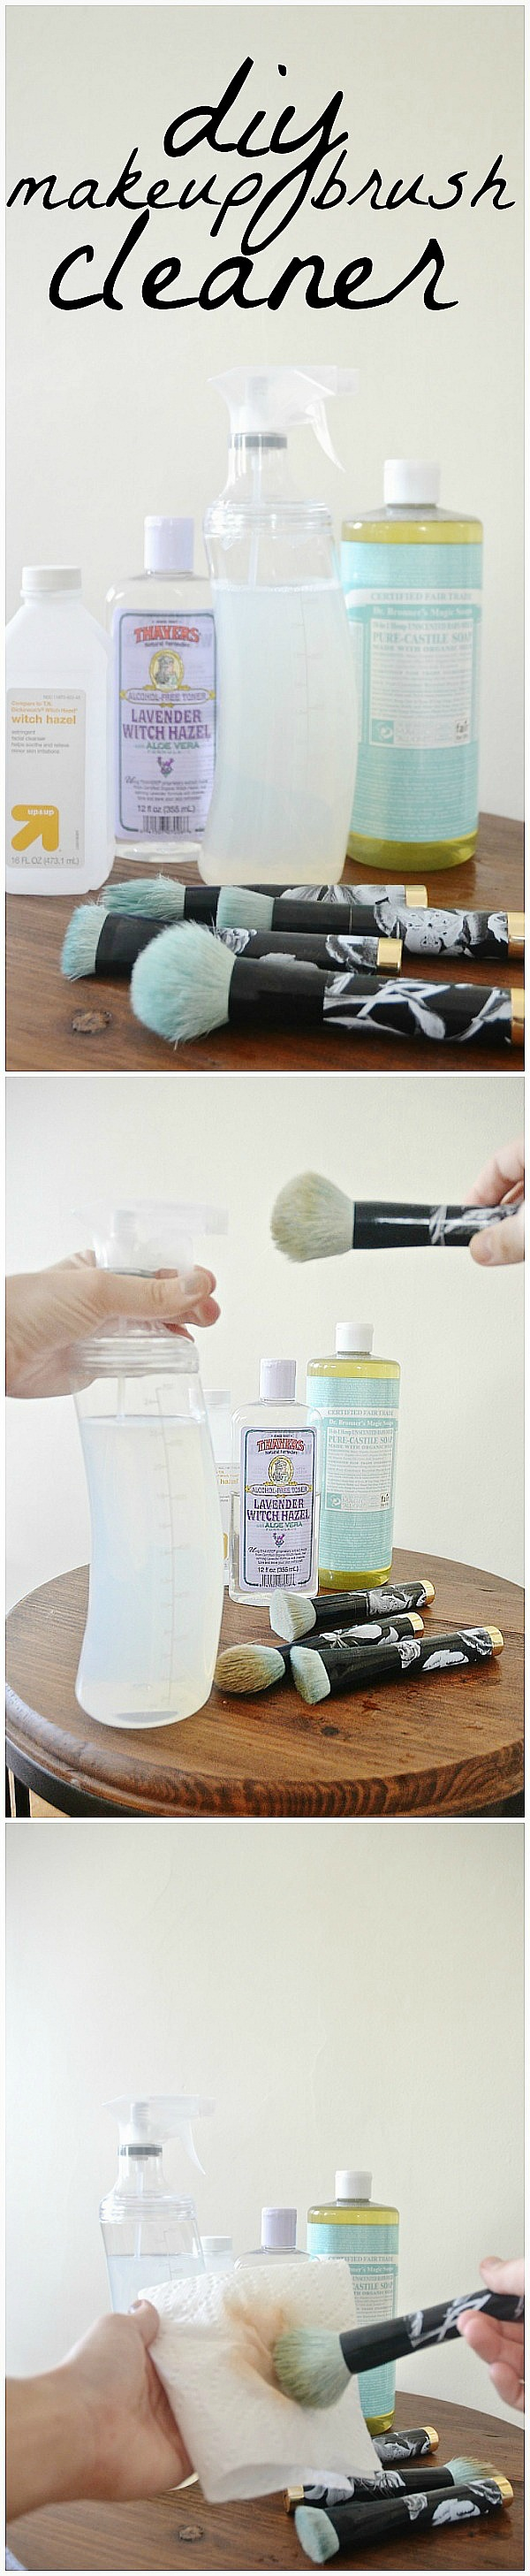 Makeup brush cleaner, DIY Makeup Brush Cleaner